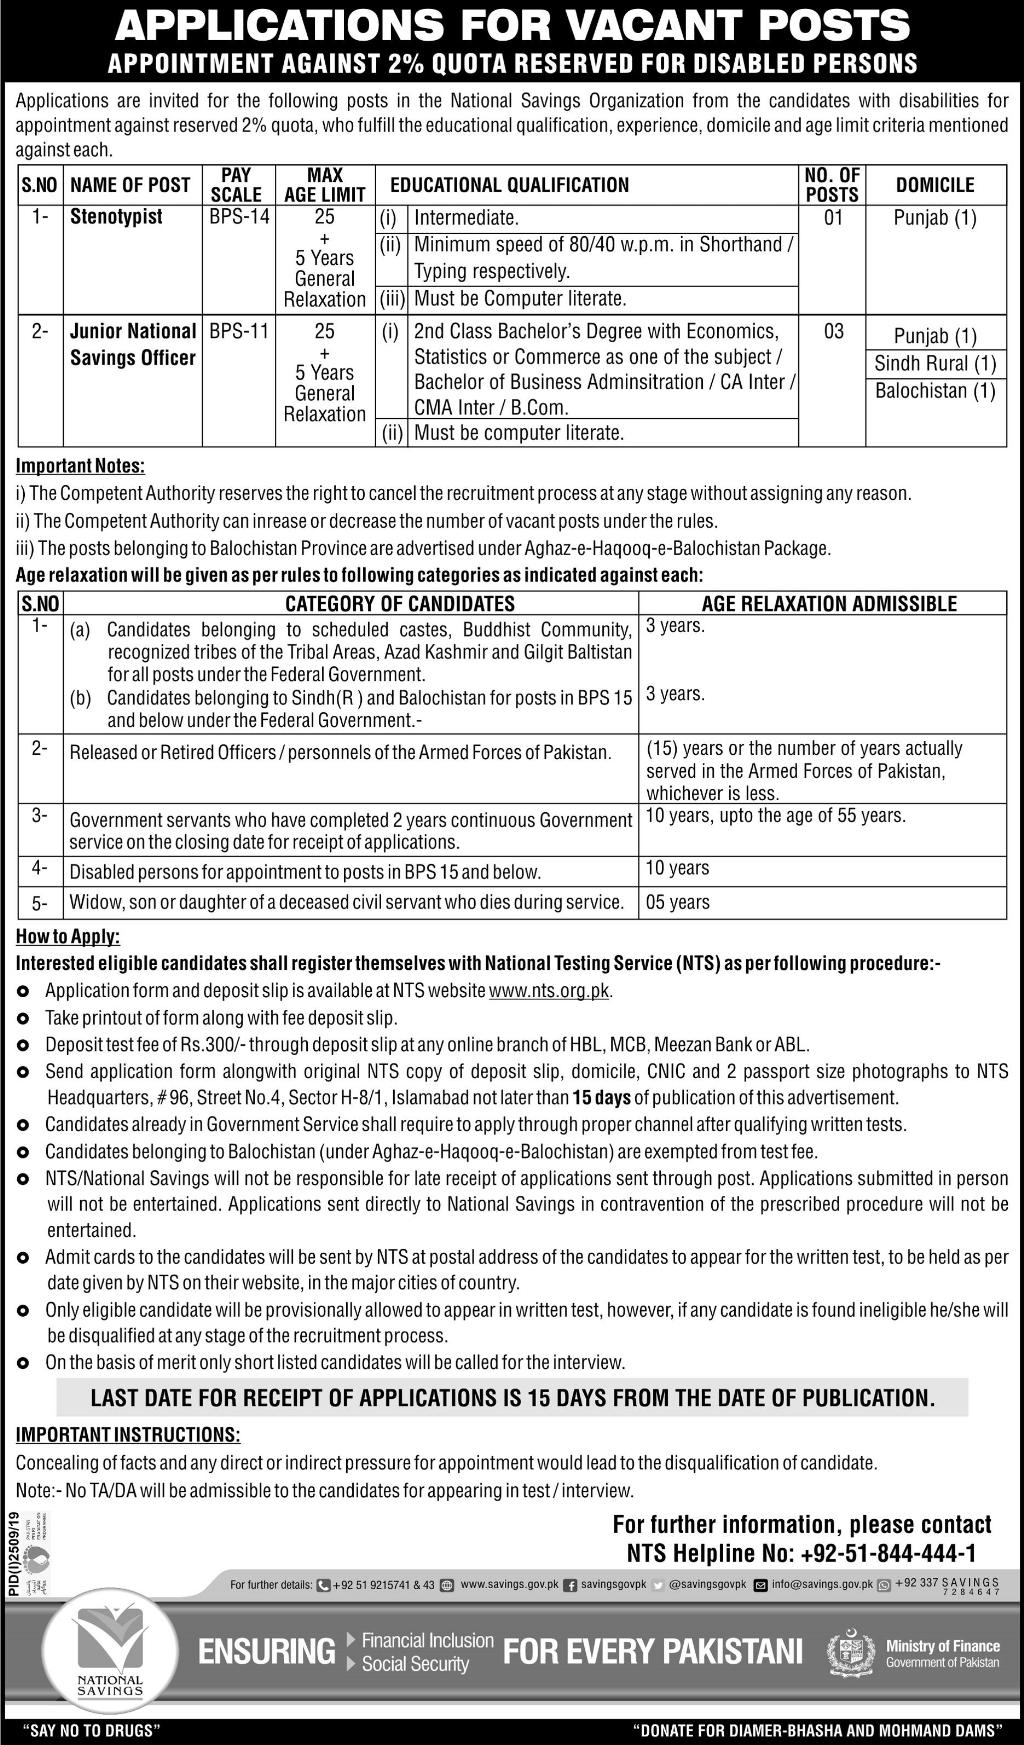 National Savings Organization Jobs Via NTS